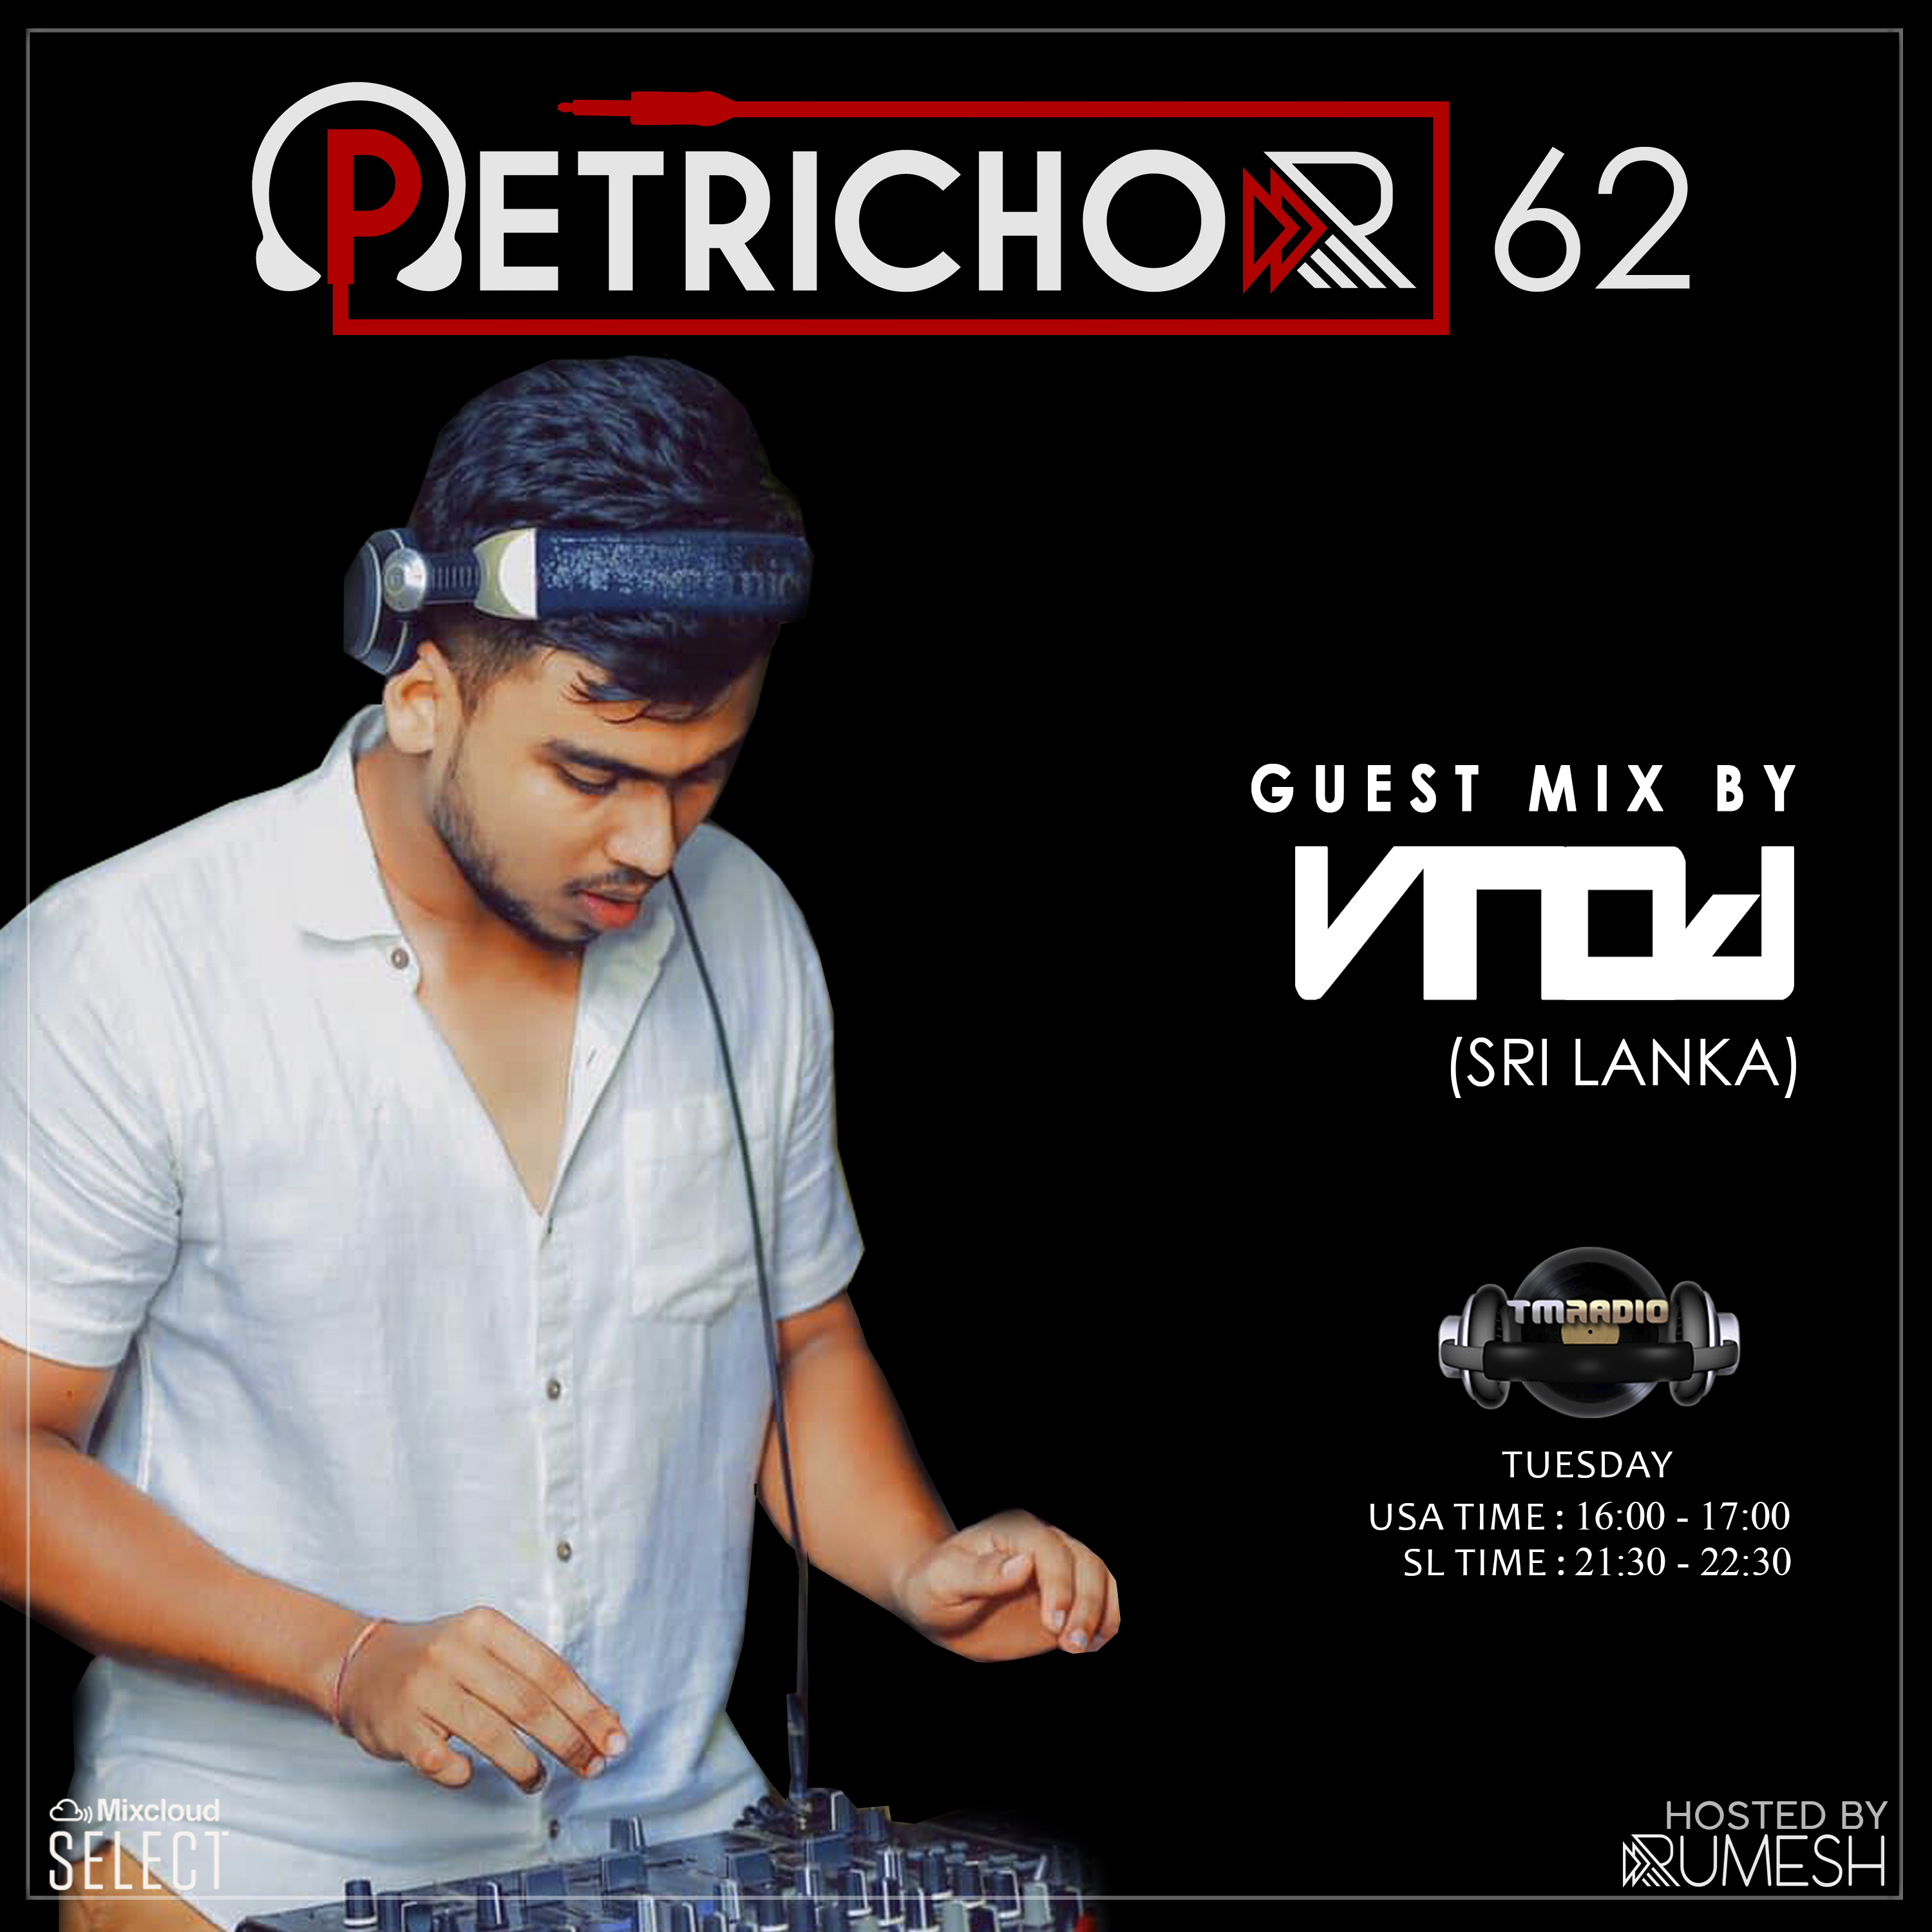 Petrichor :: Petrichor 62 guest mix by Vinod (Sri Lanka) (aired on January 14th, 2020) banner logo